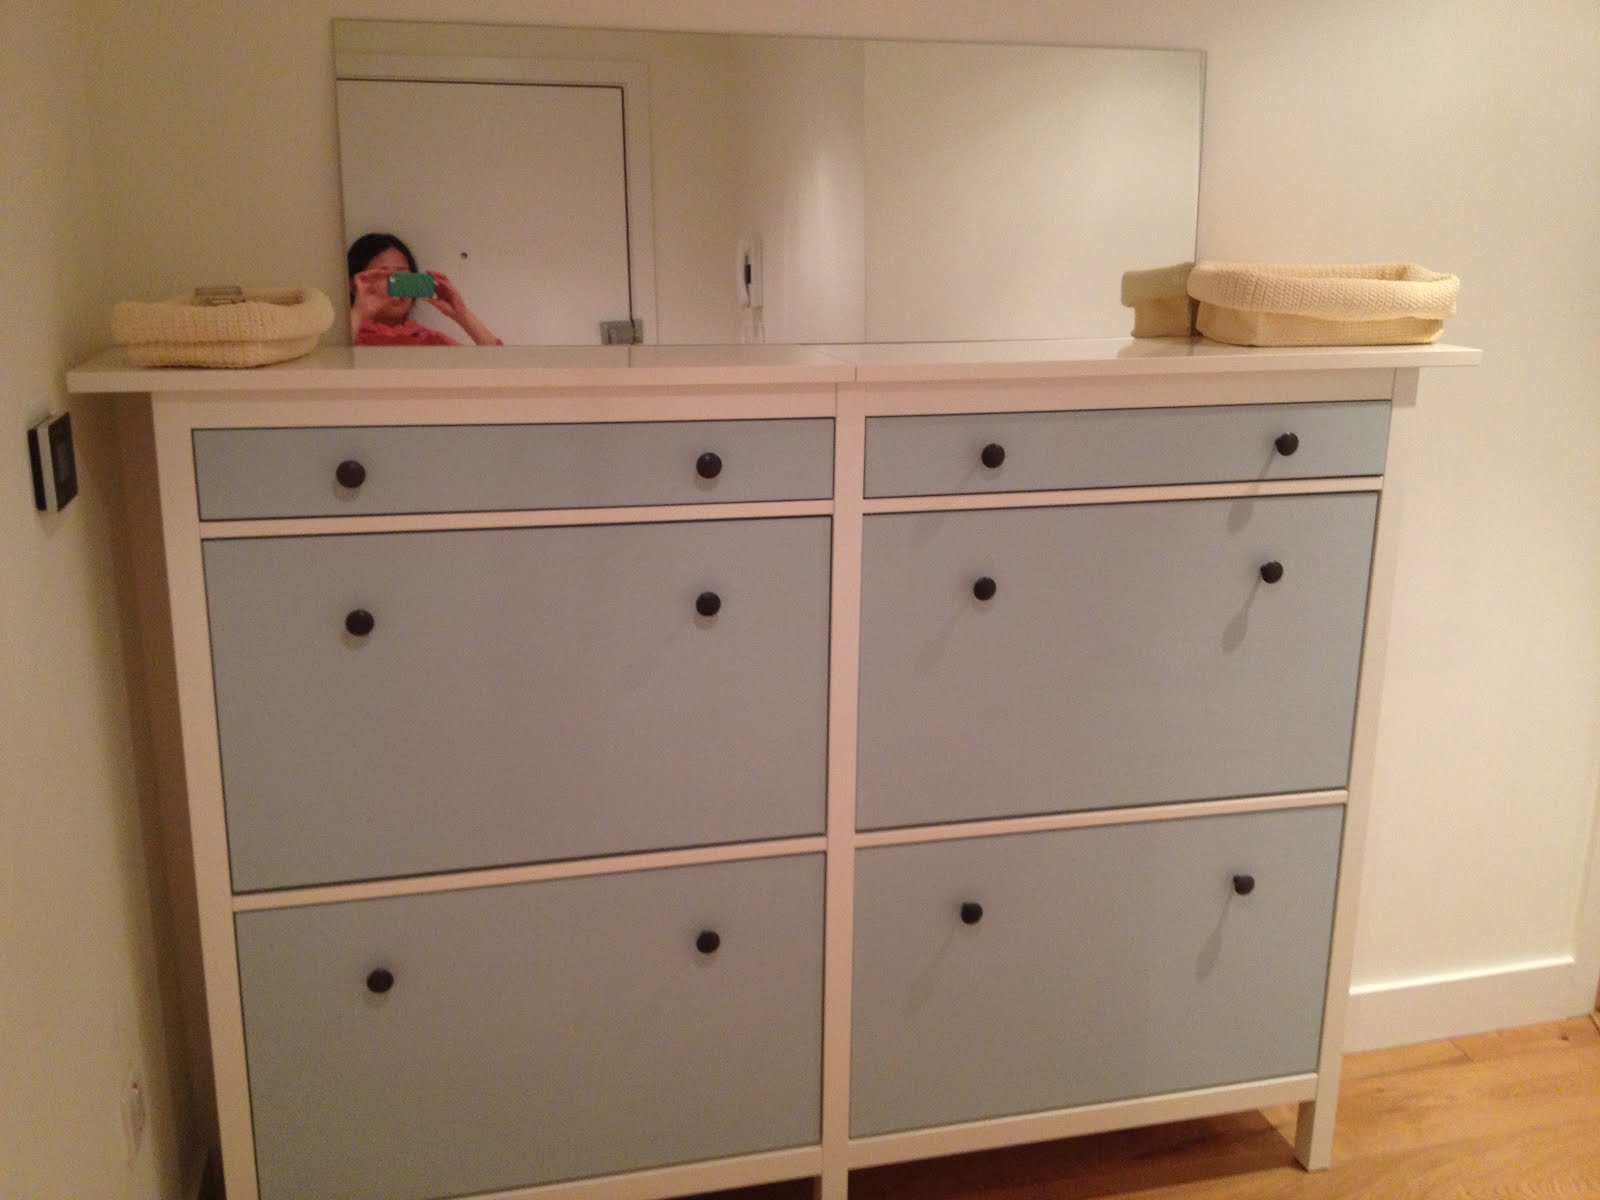 Wedded Hemnes Shoe Cabinets Twined And Painted